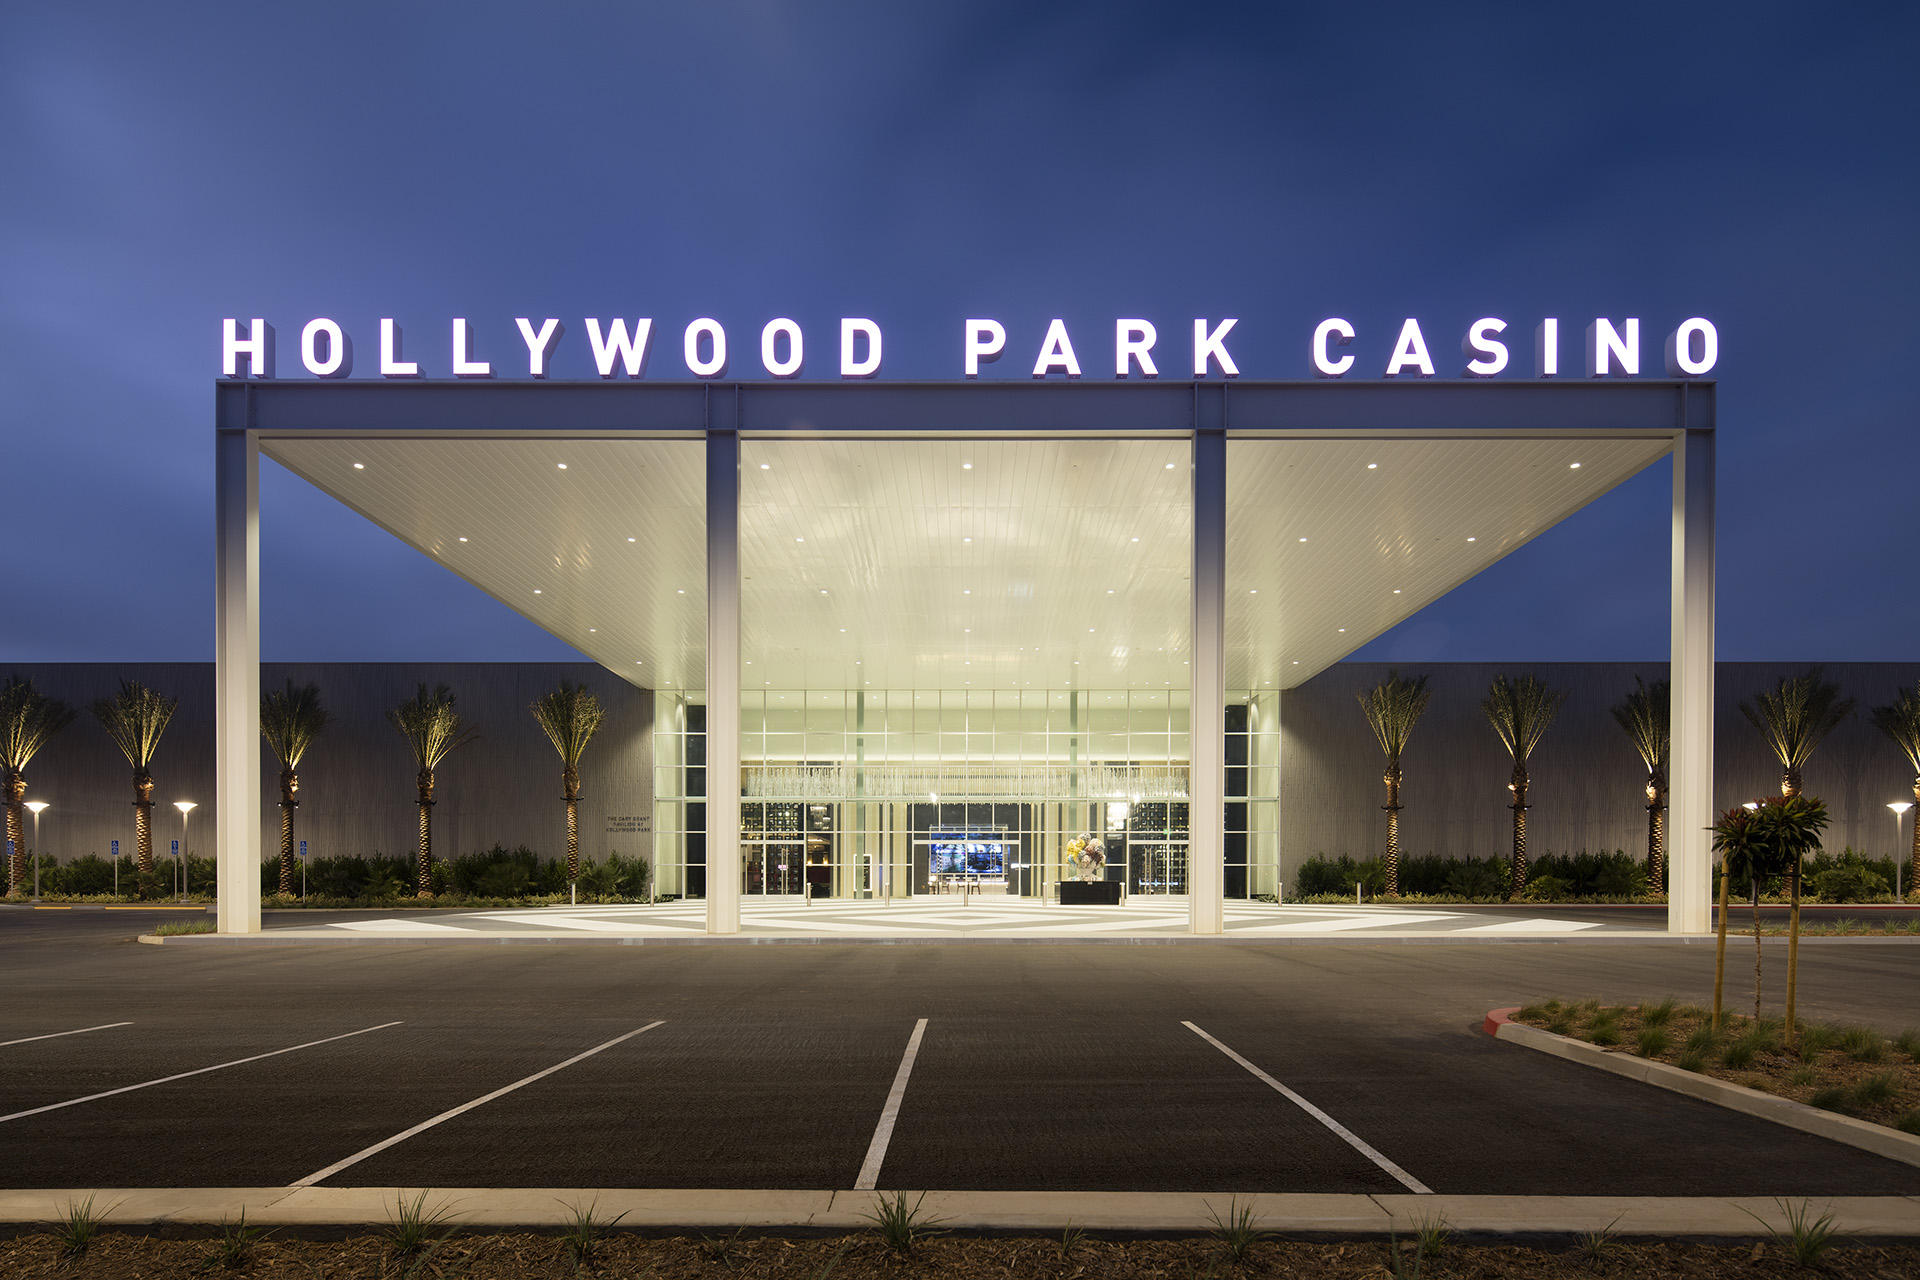 Hollywood Park Casino Entrance - Photo by Misha Bruk of Bruk studios